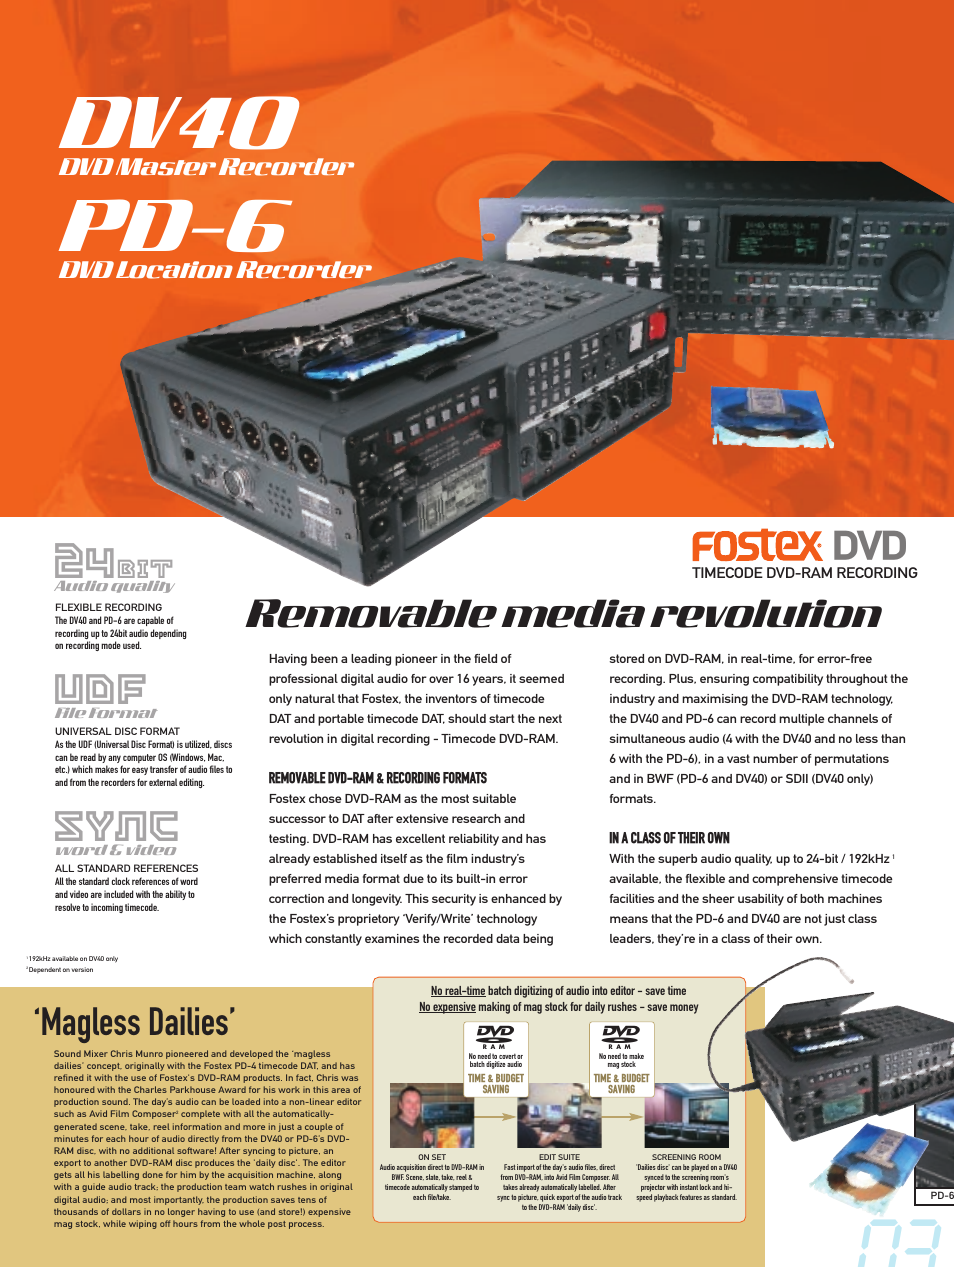 Dv40, Pd-6, Sync | Magless dailies, Removable media revolution, Dvd